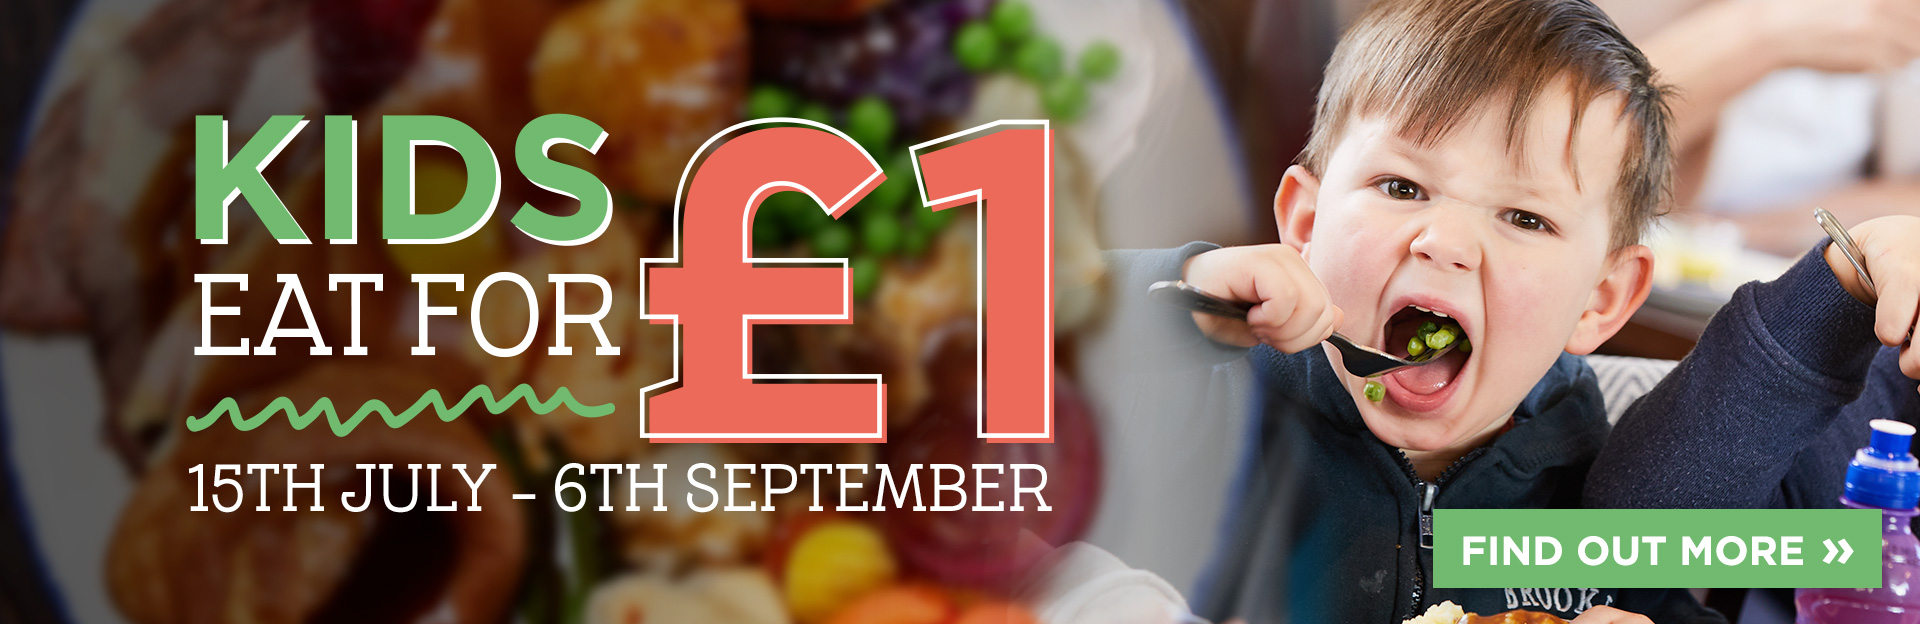 Kids Eat for £1 at The Ashbank